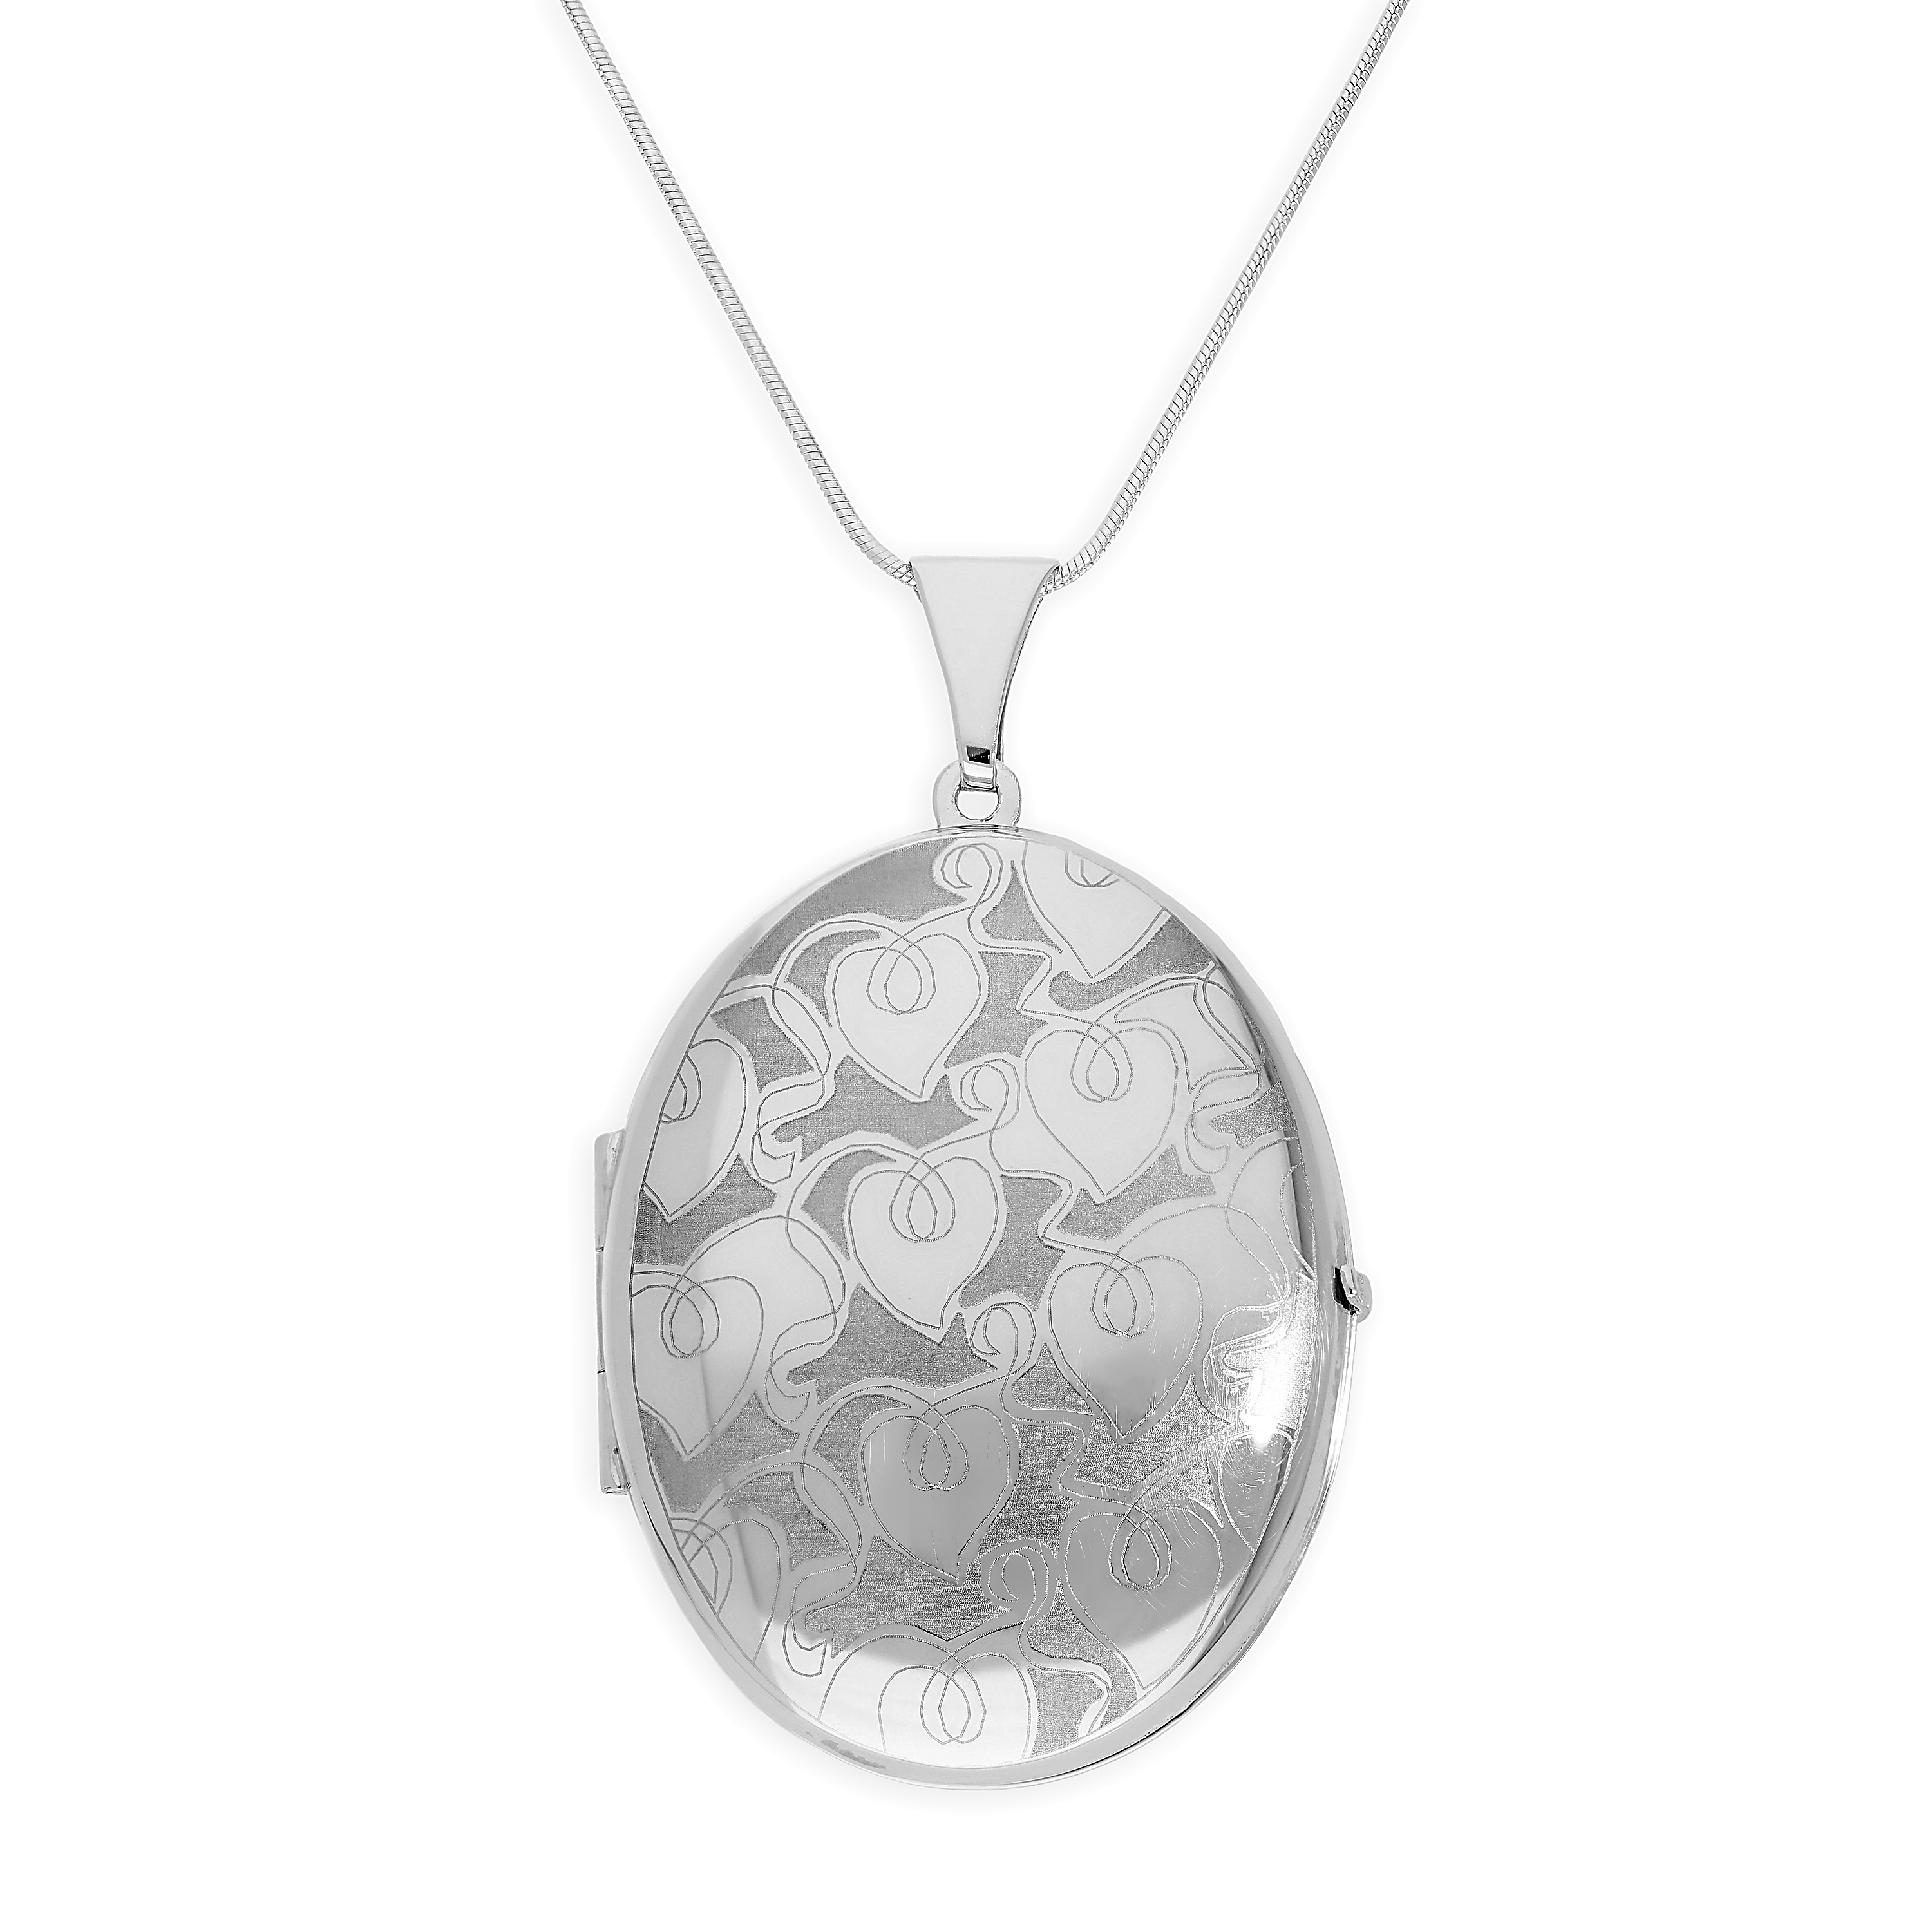 An image of Large Matt Sterling Silver Engravable Hearts Vines Oval Locket on 20 Inches Chai...